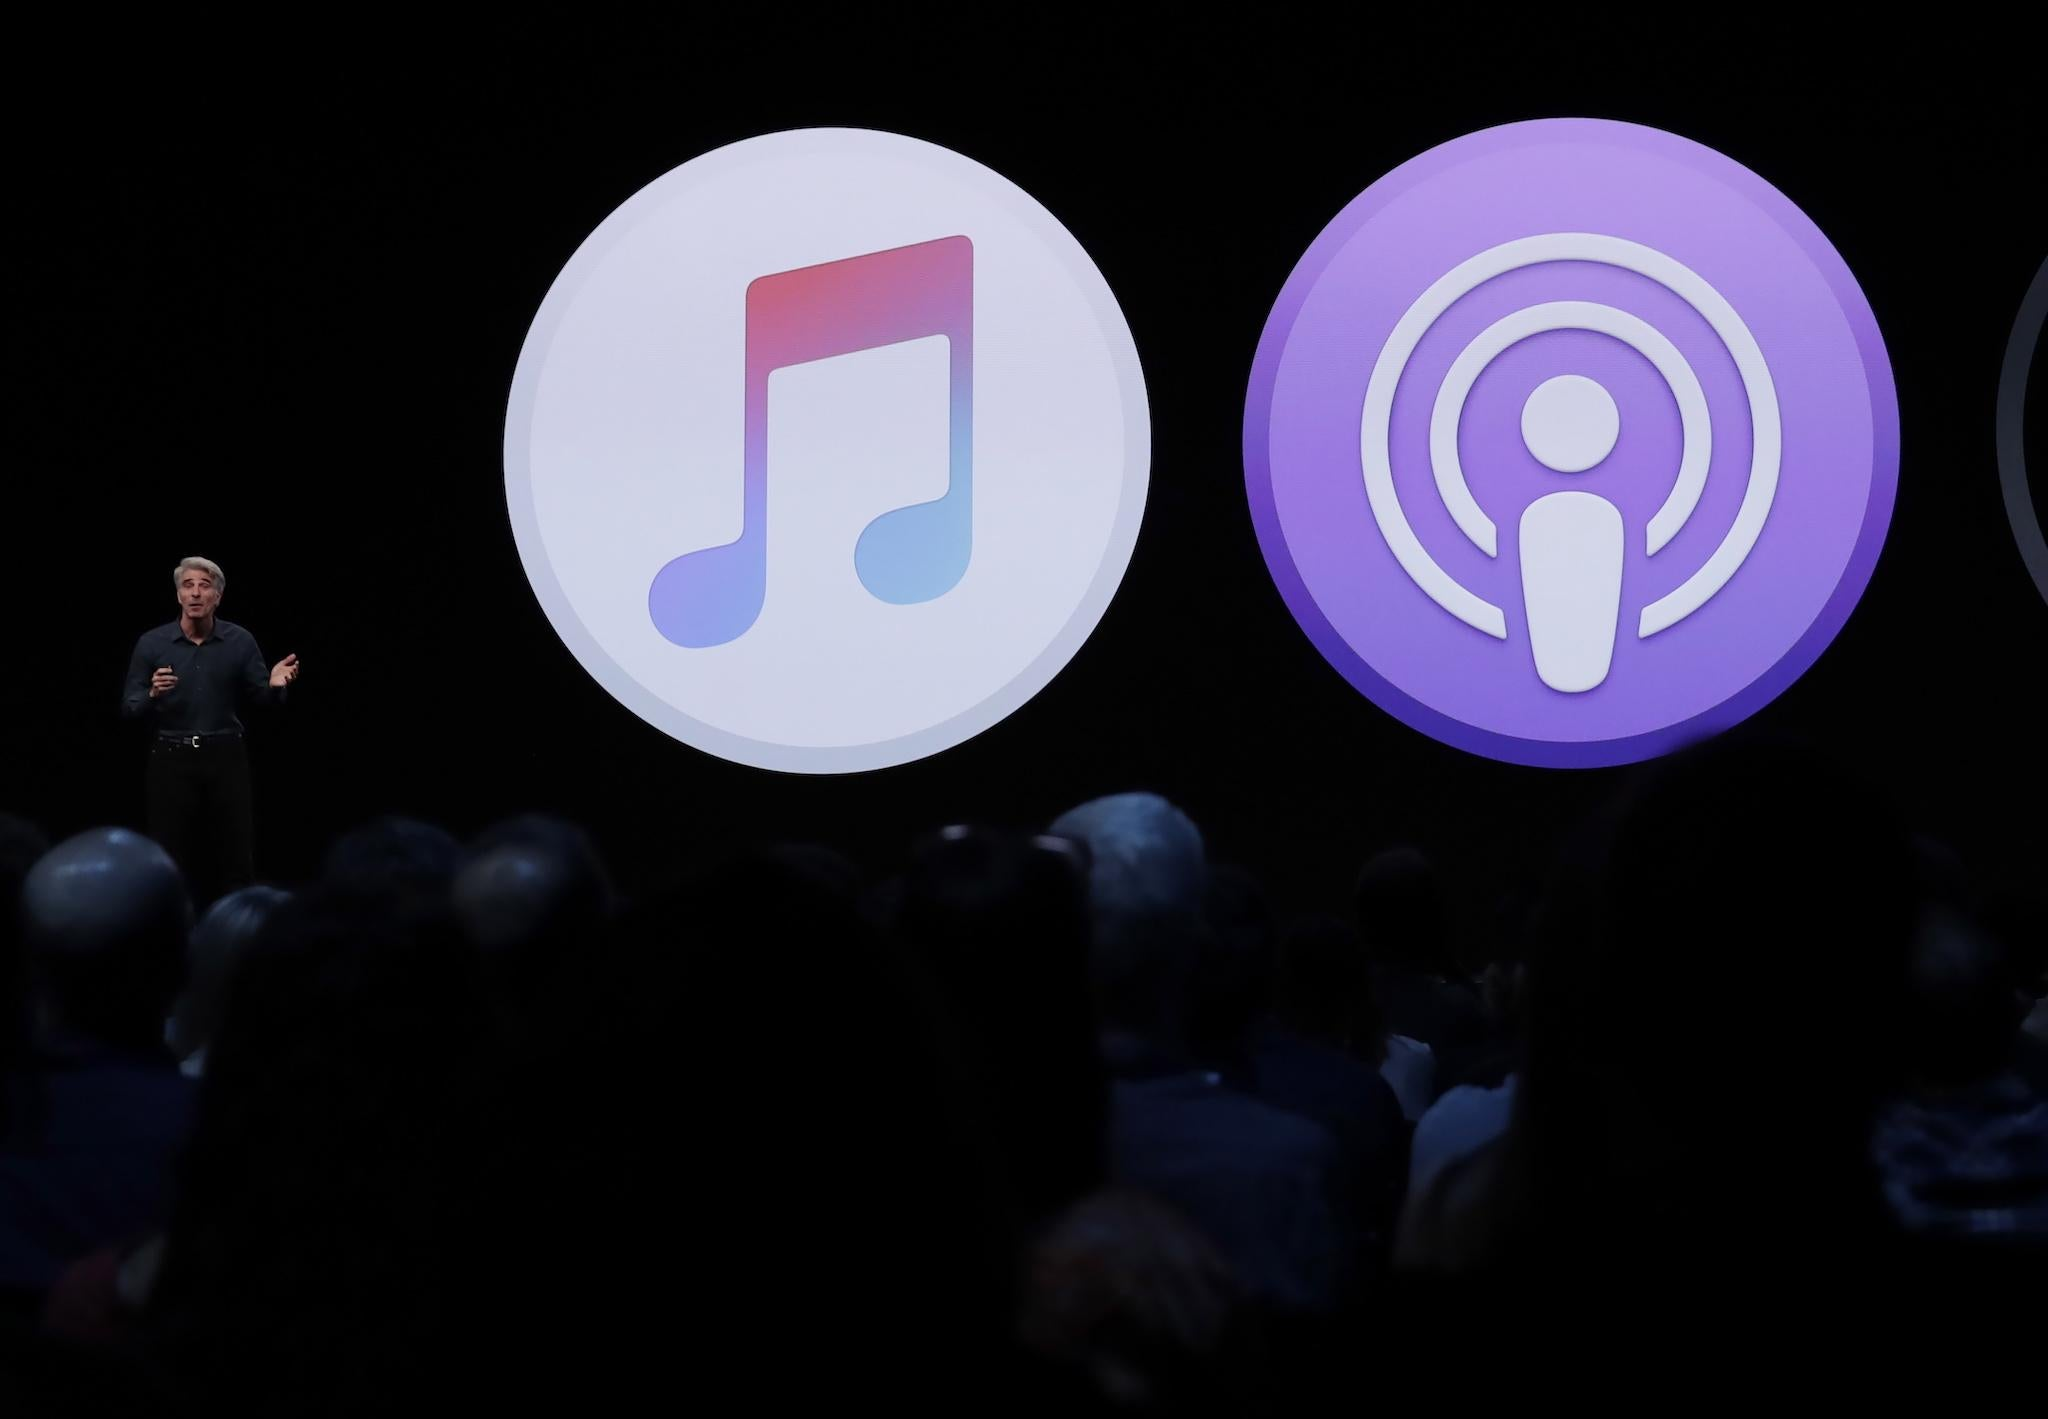 MacOS Catalina: Apple releases new Mac update that kills iTunes and brings variety of new features